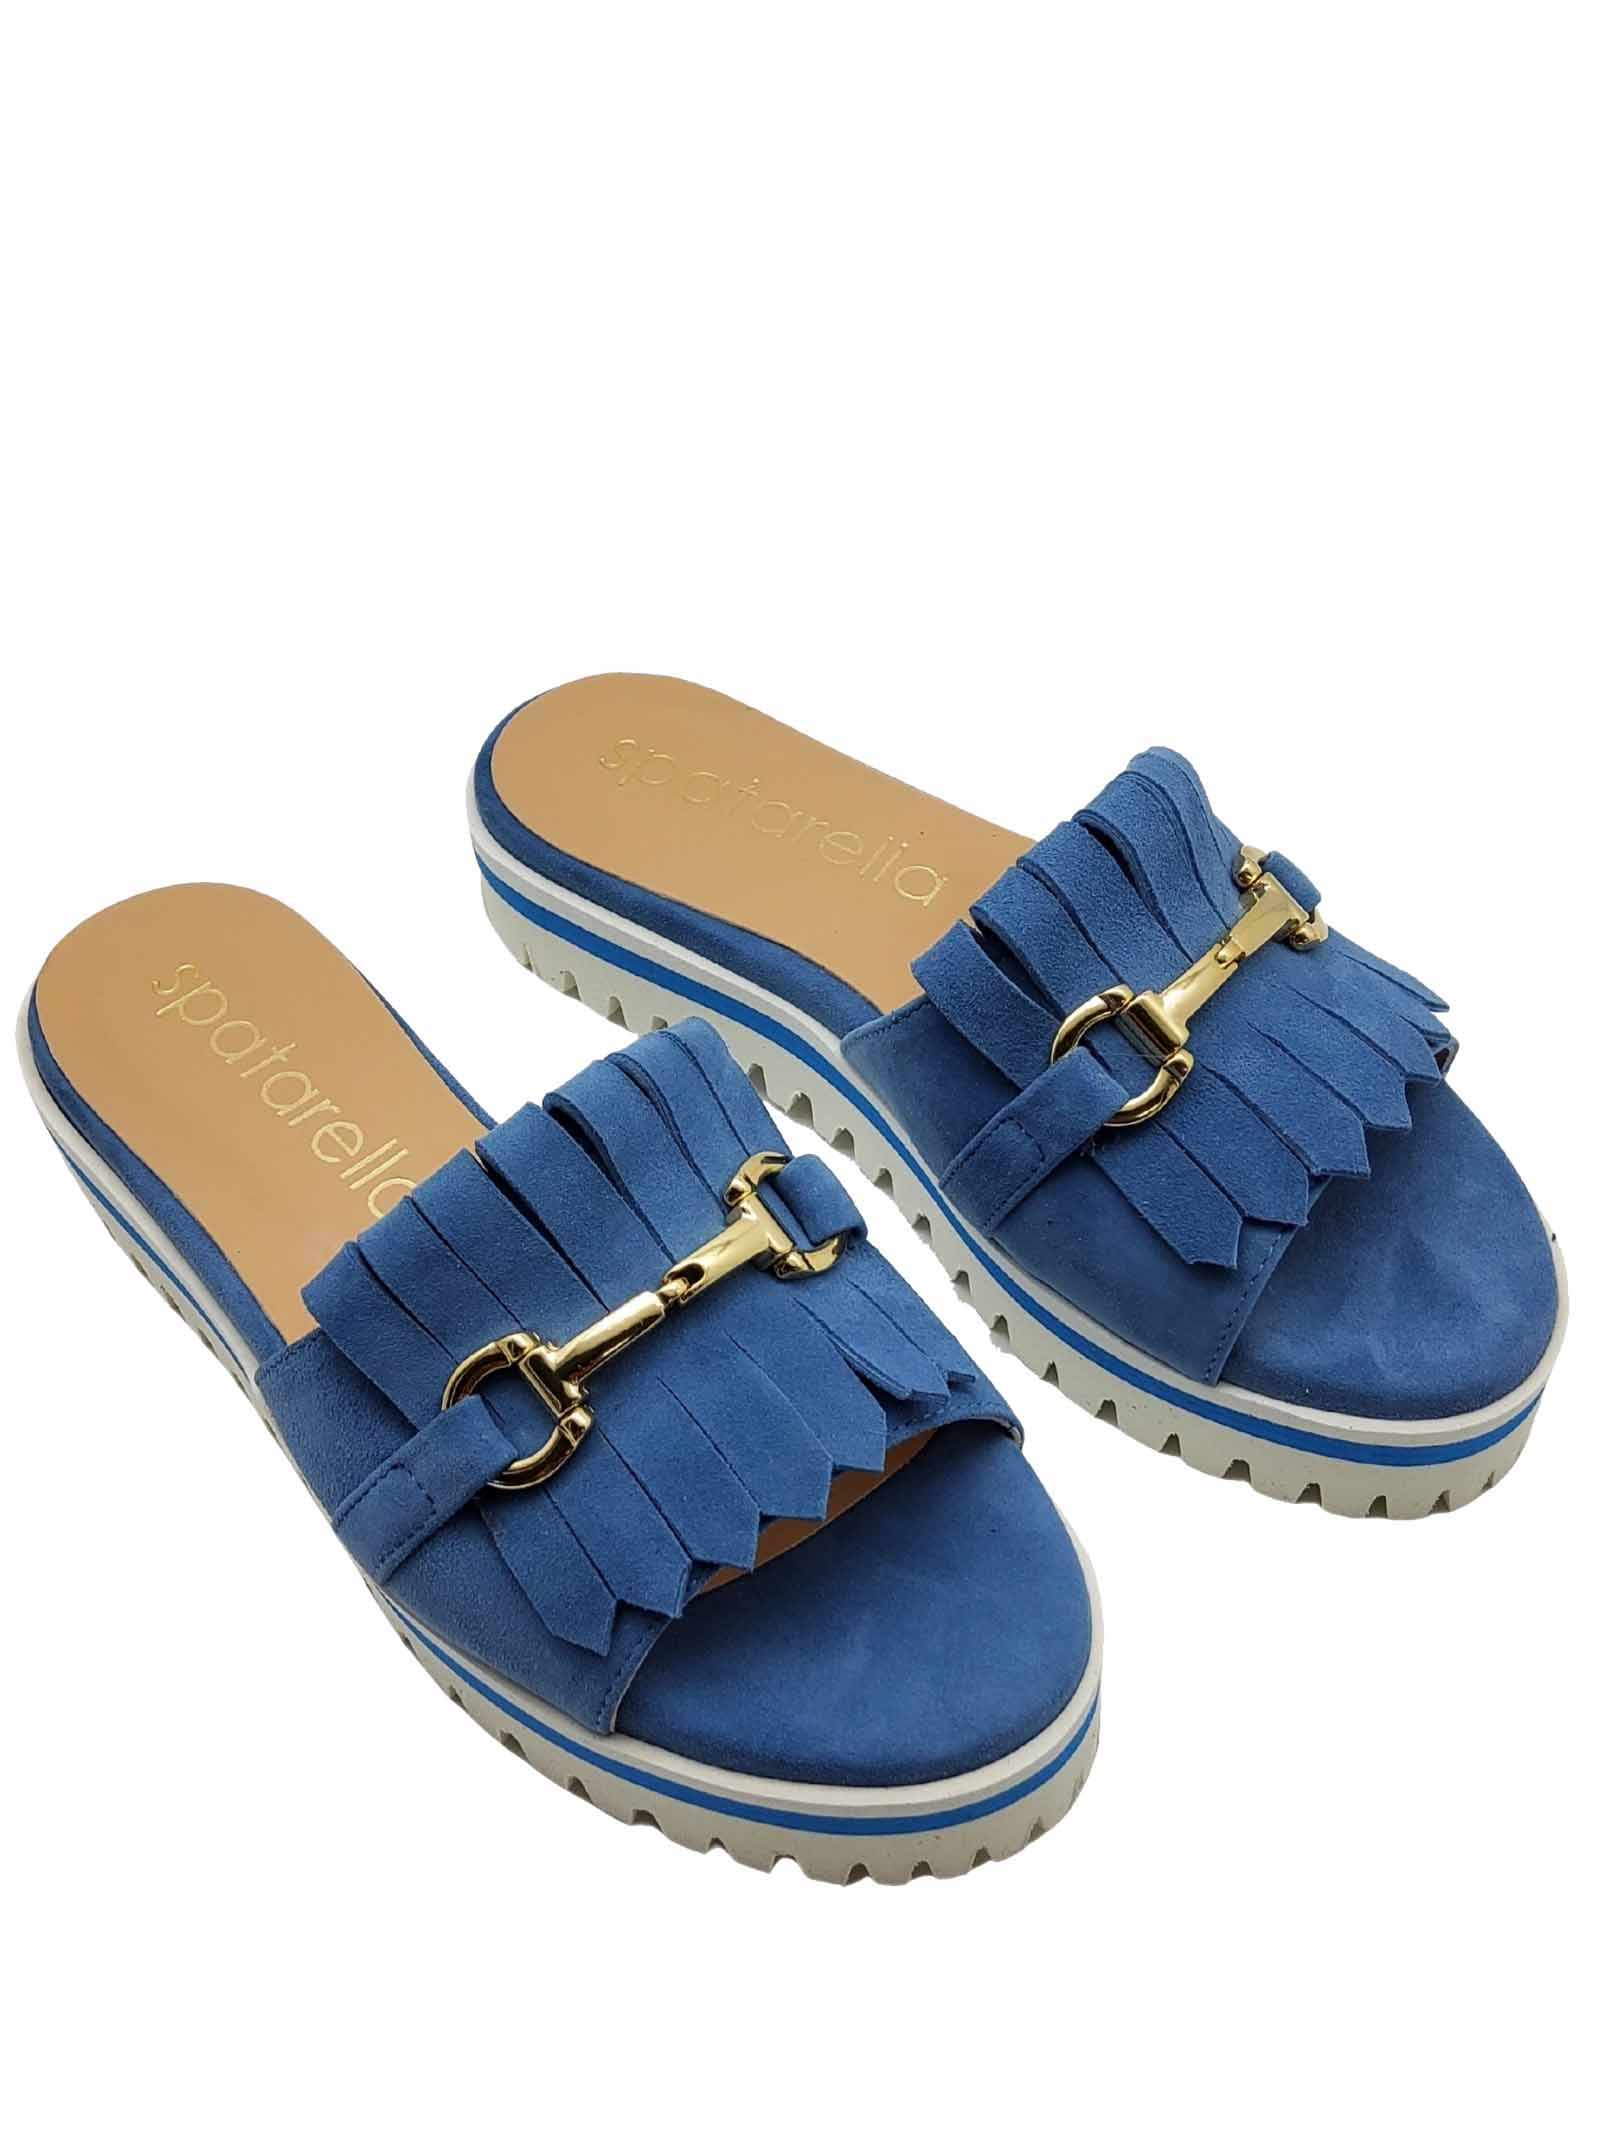 Women's Shoes Sandals in Light Blue Suede with Fringes and Gold Clamp Low Wedge Wedge Spatarella | Sandals | 3550003